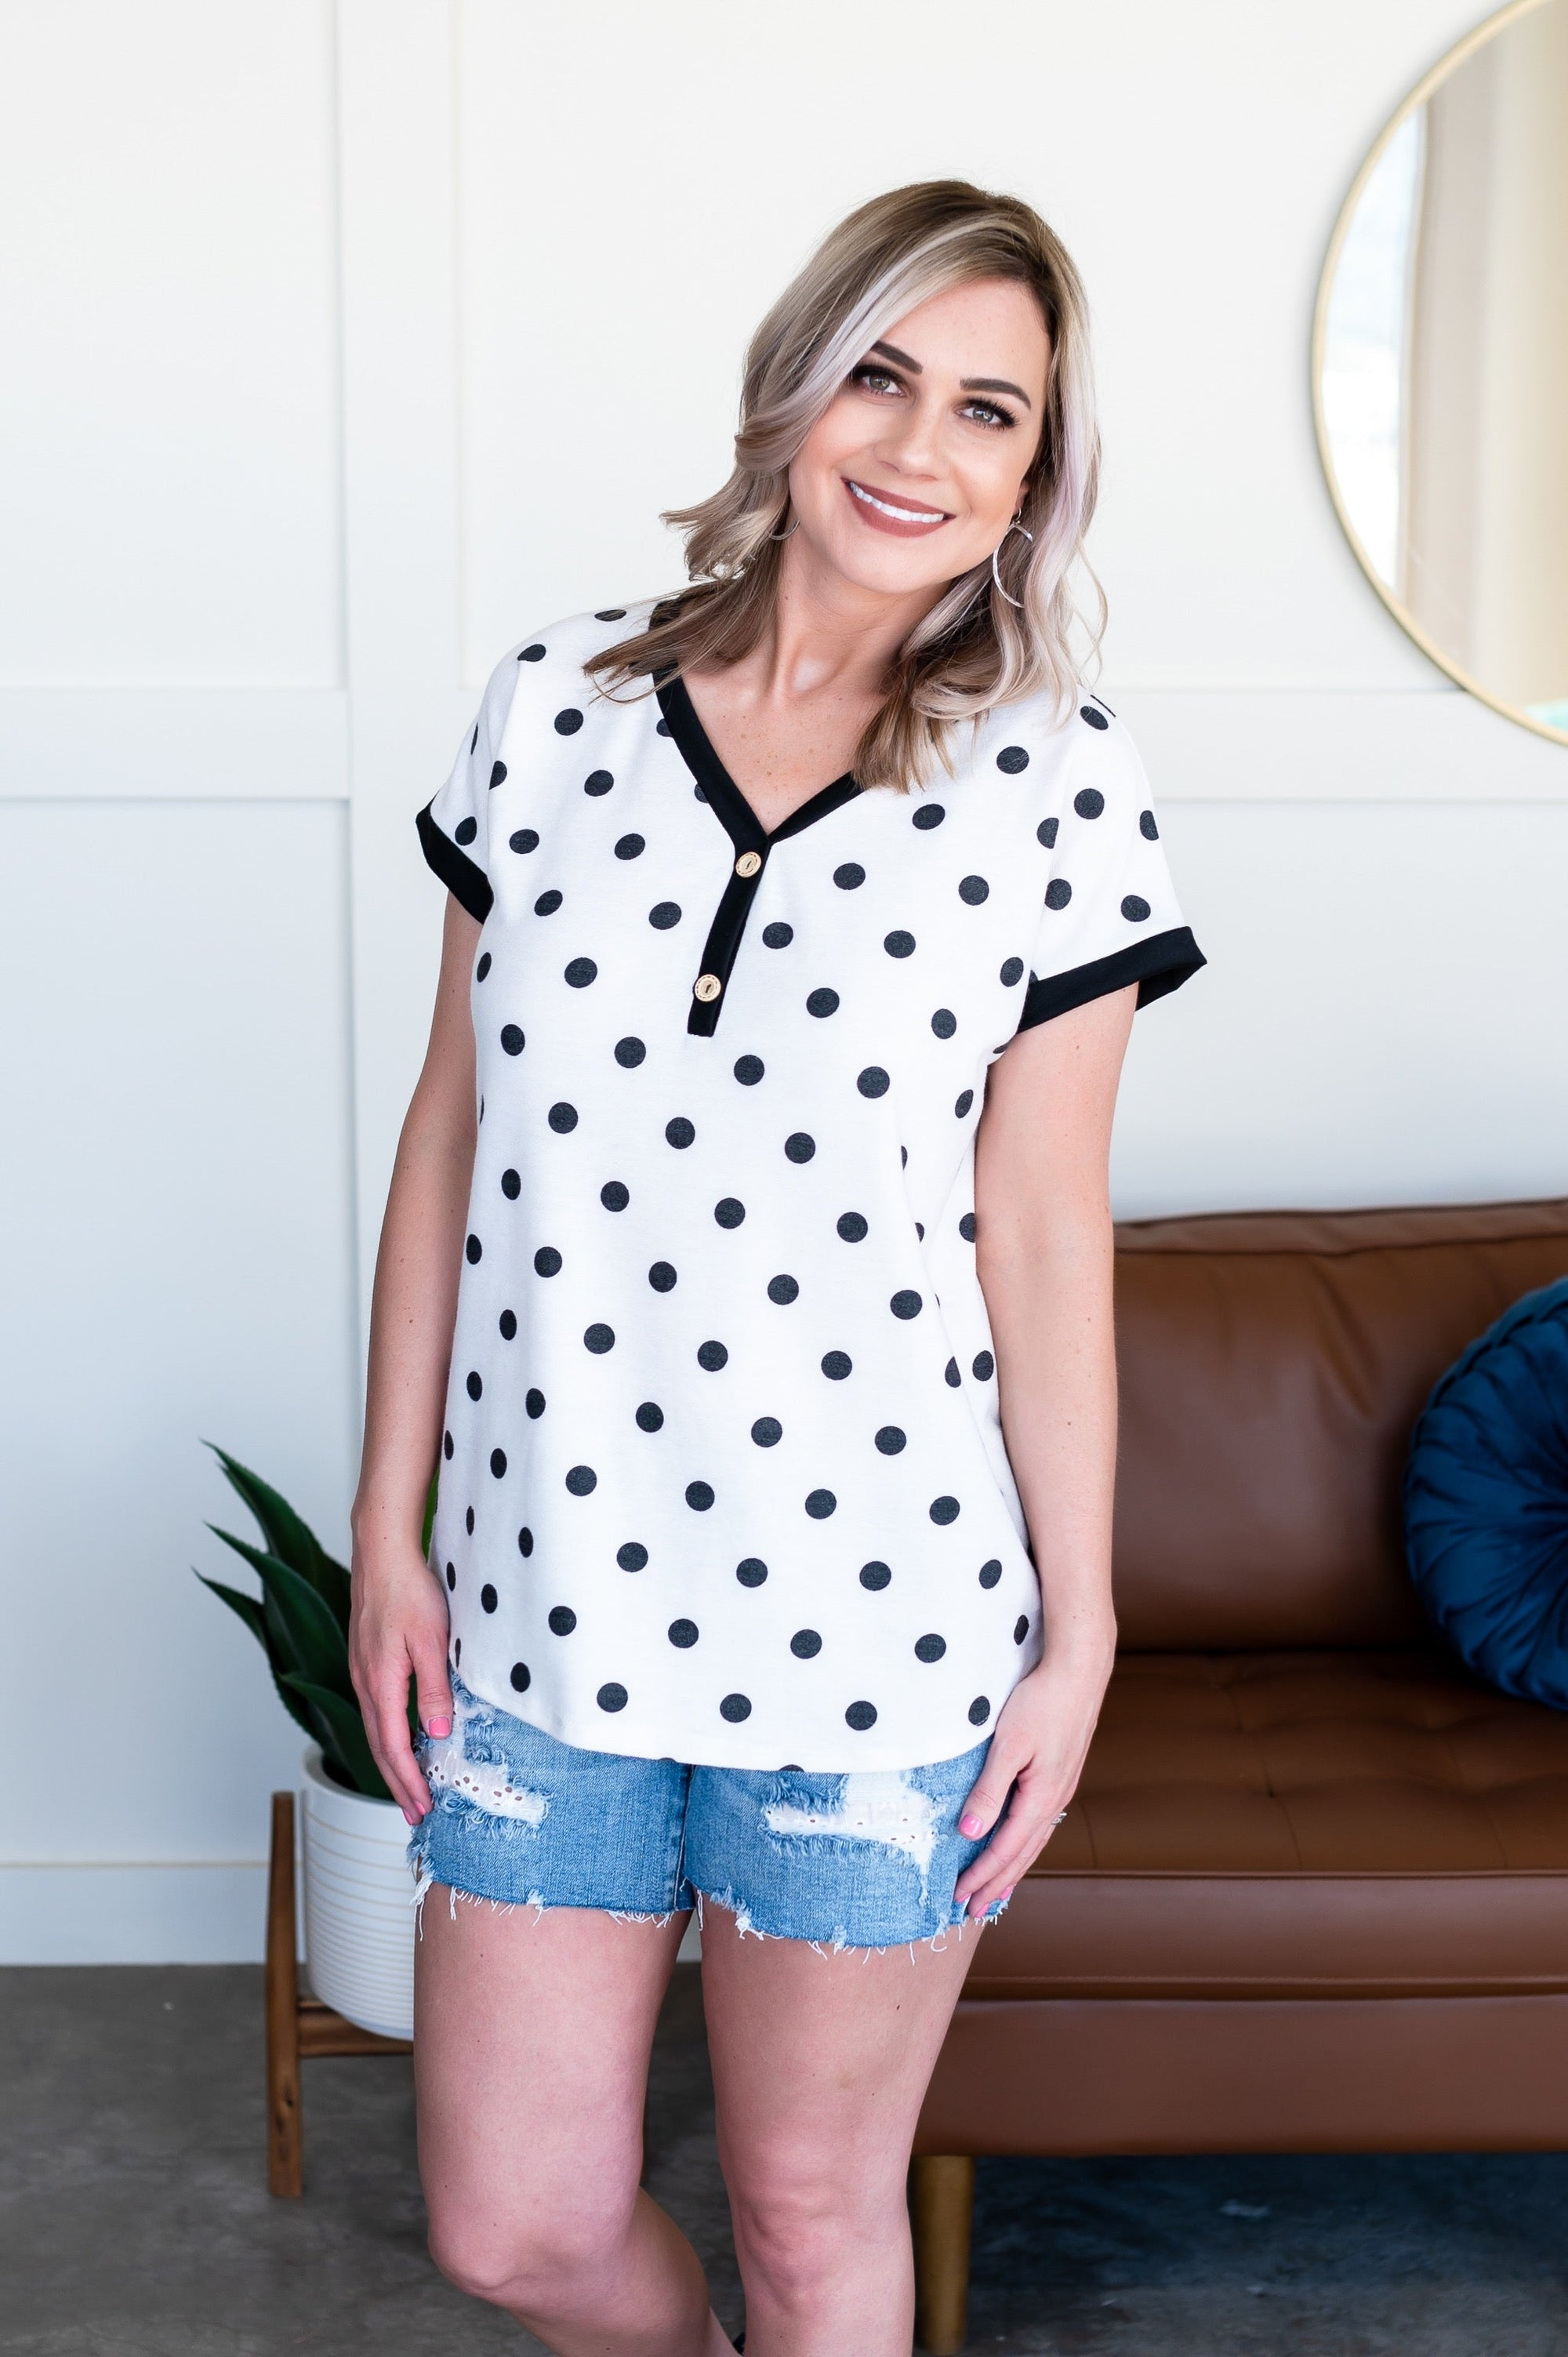 All In Good Fun Polkadot Top